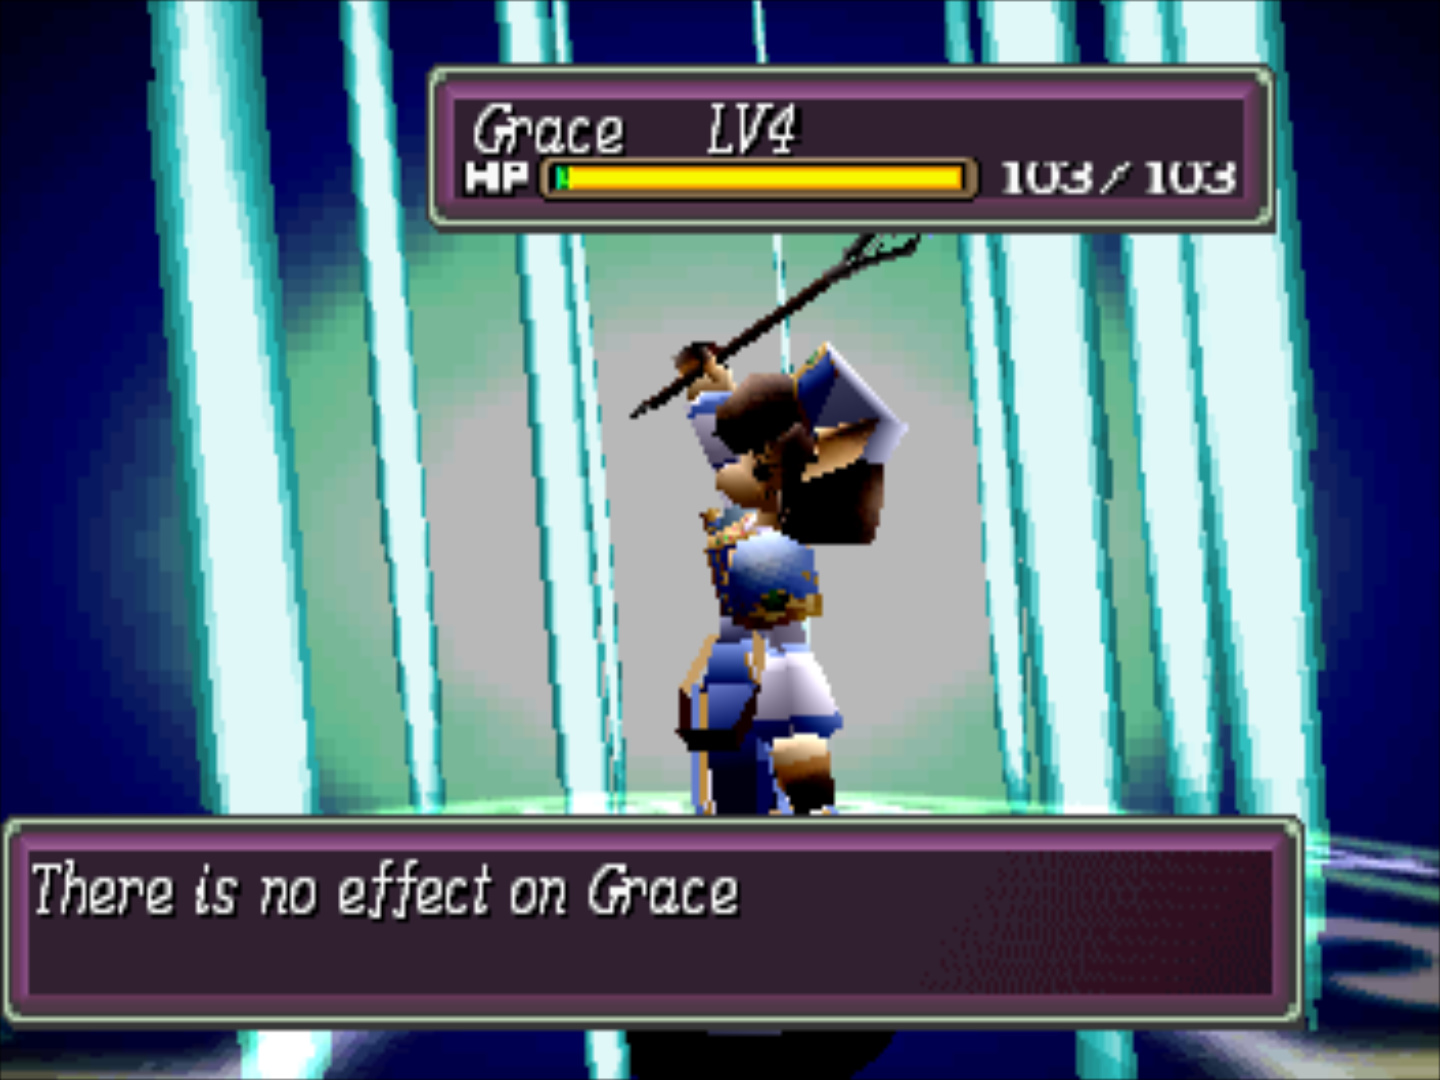 Kronos and Shining Force 3 Graphical issues - Cores